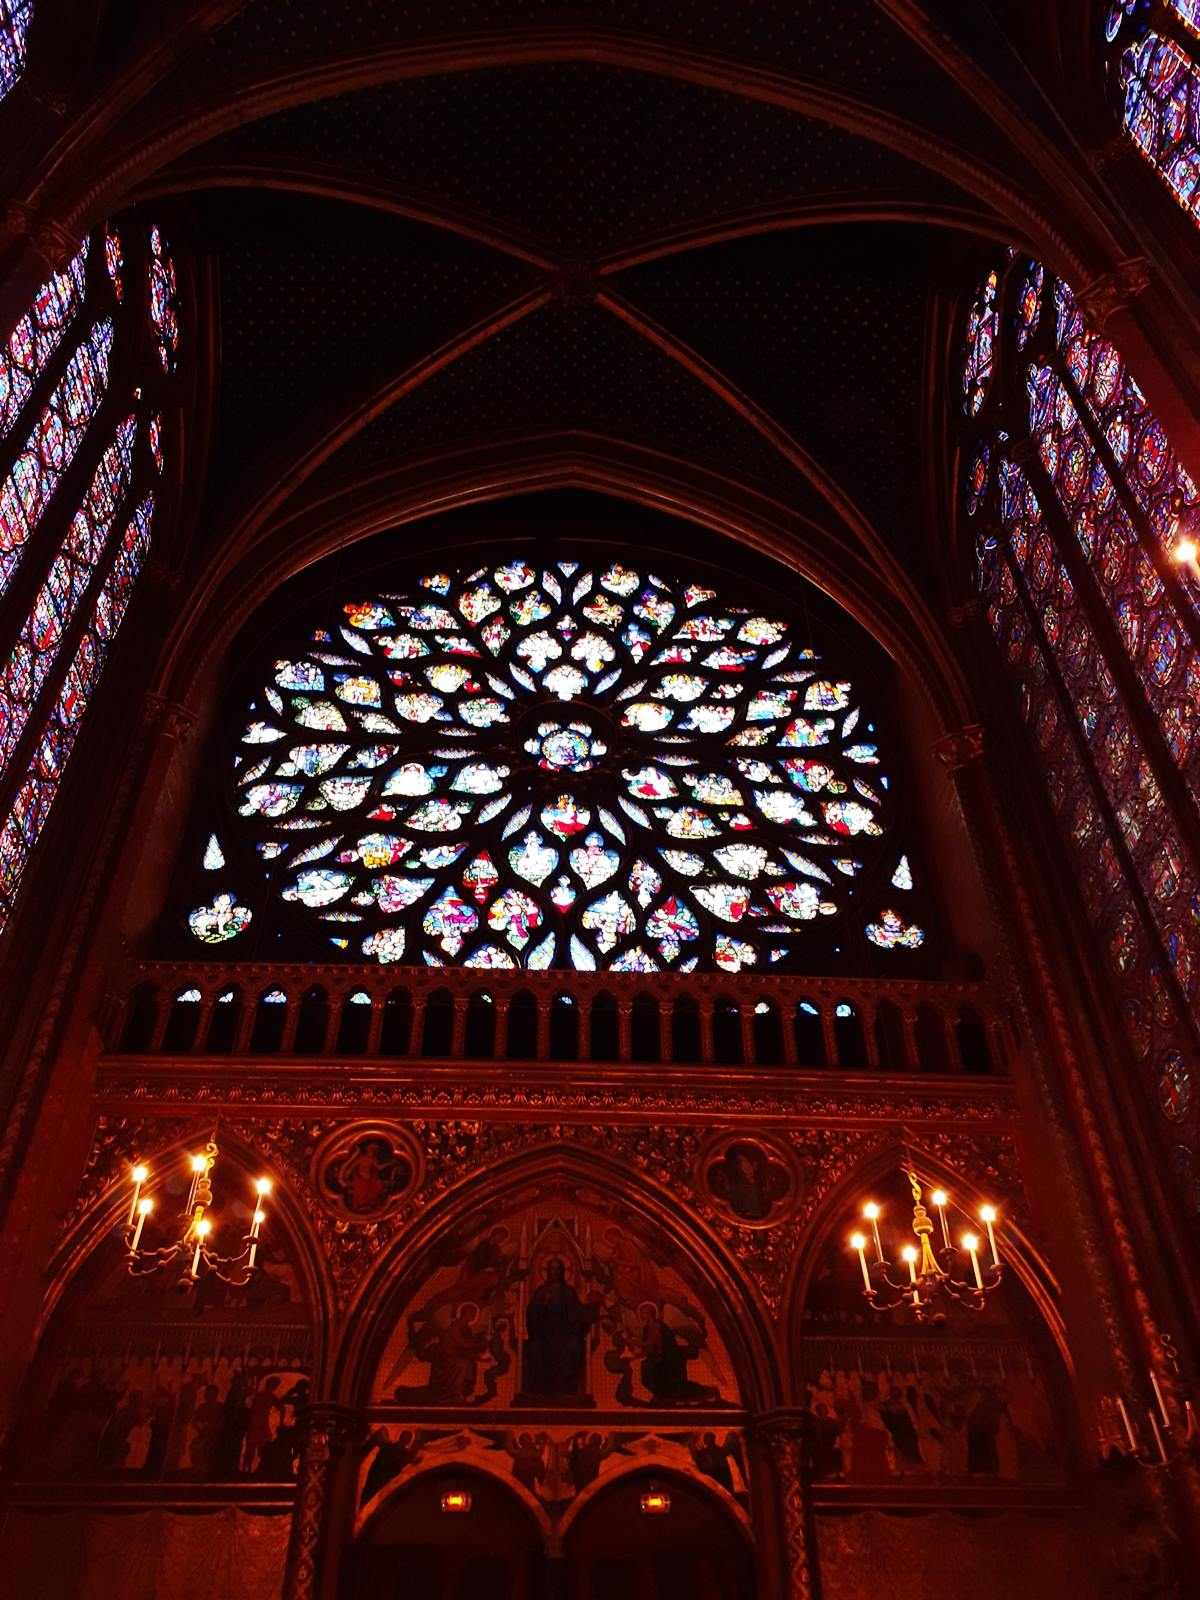 La sainte chapelle paris cite chateletsainte chapelle paris 9